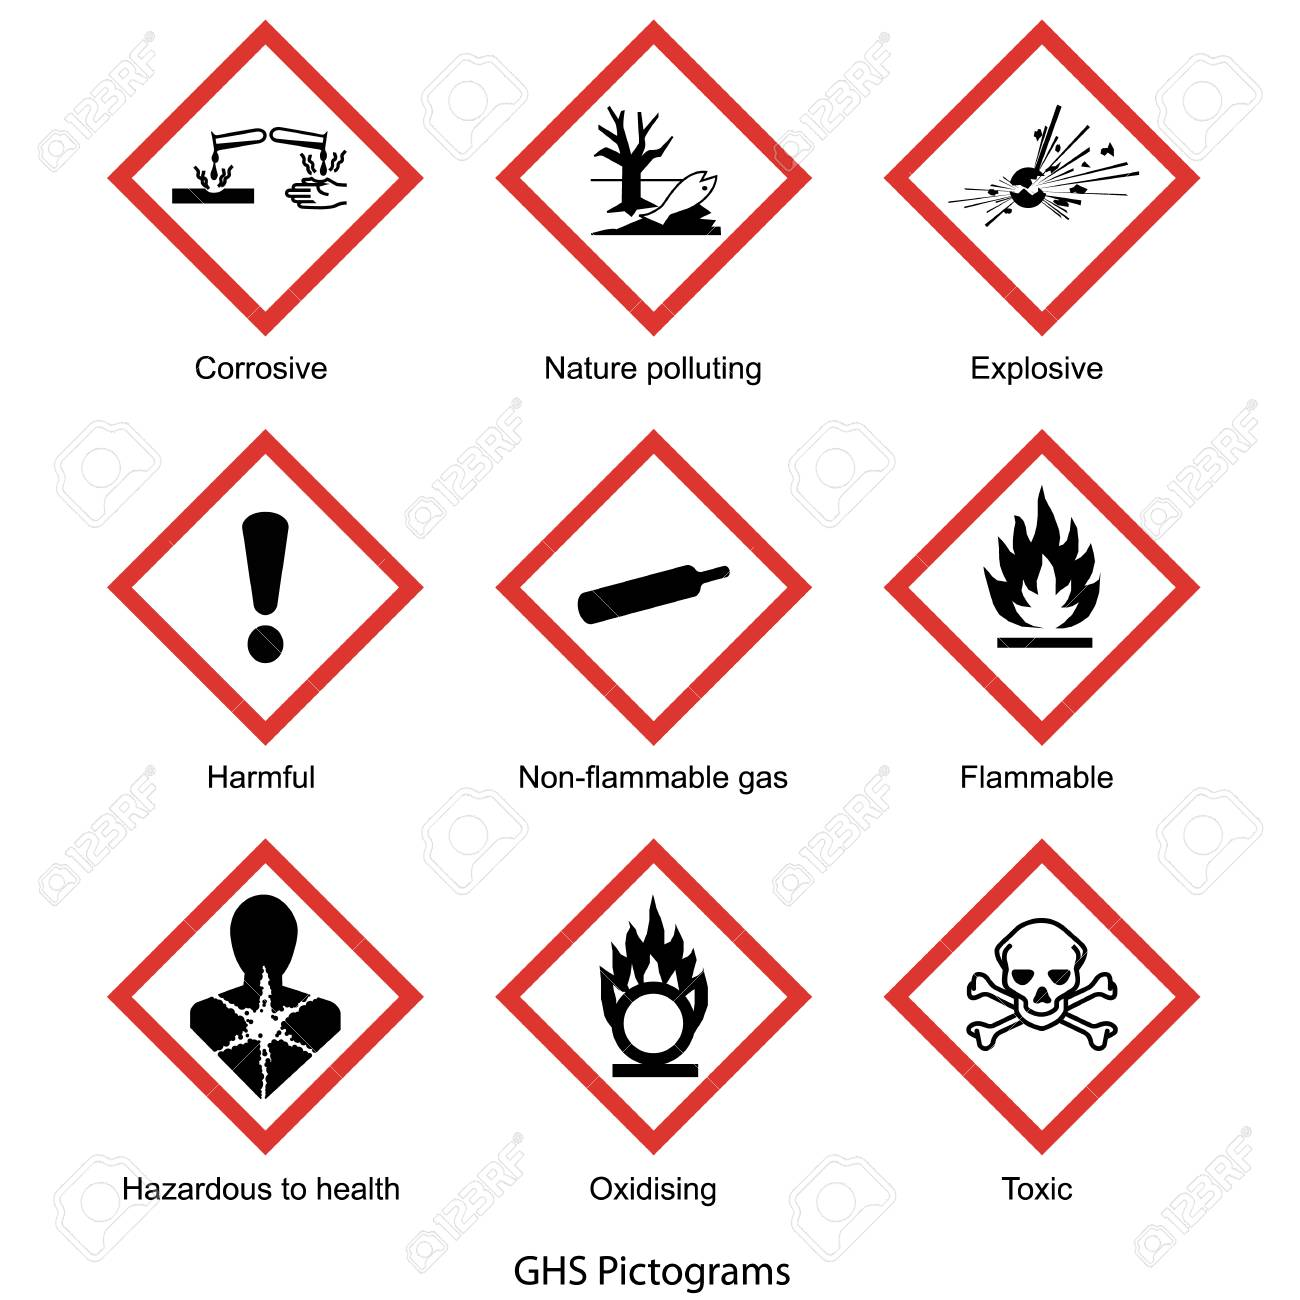 GHS pictogram collection vector isolated on white background - 117795475